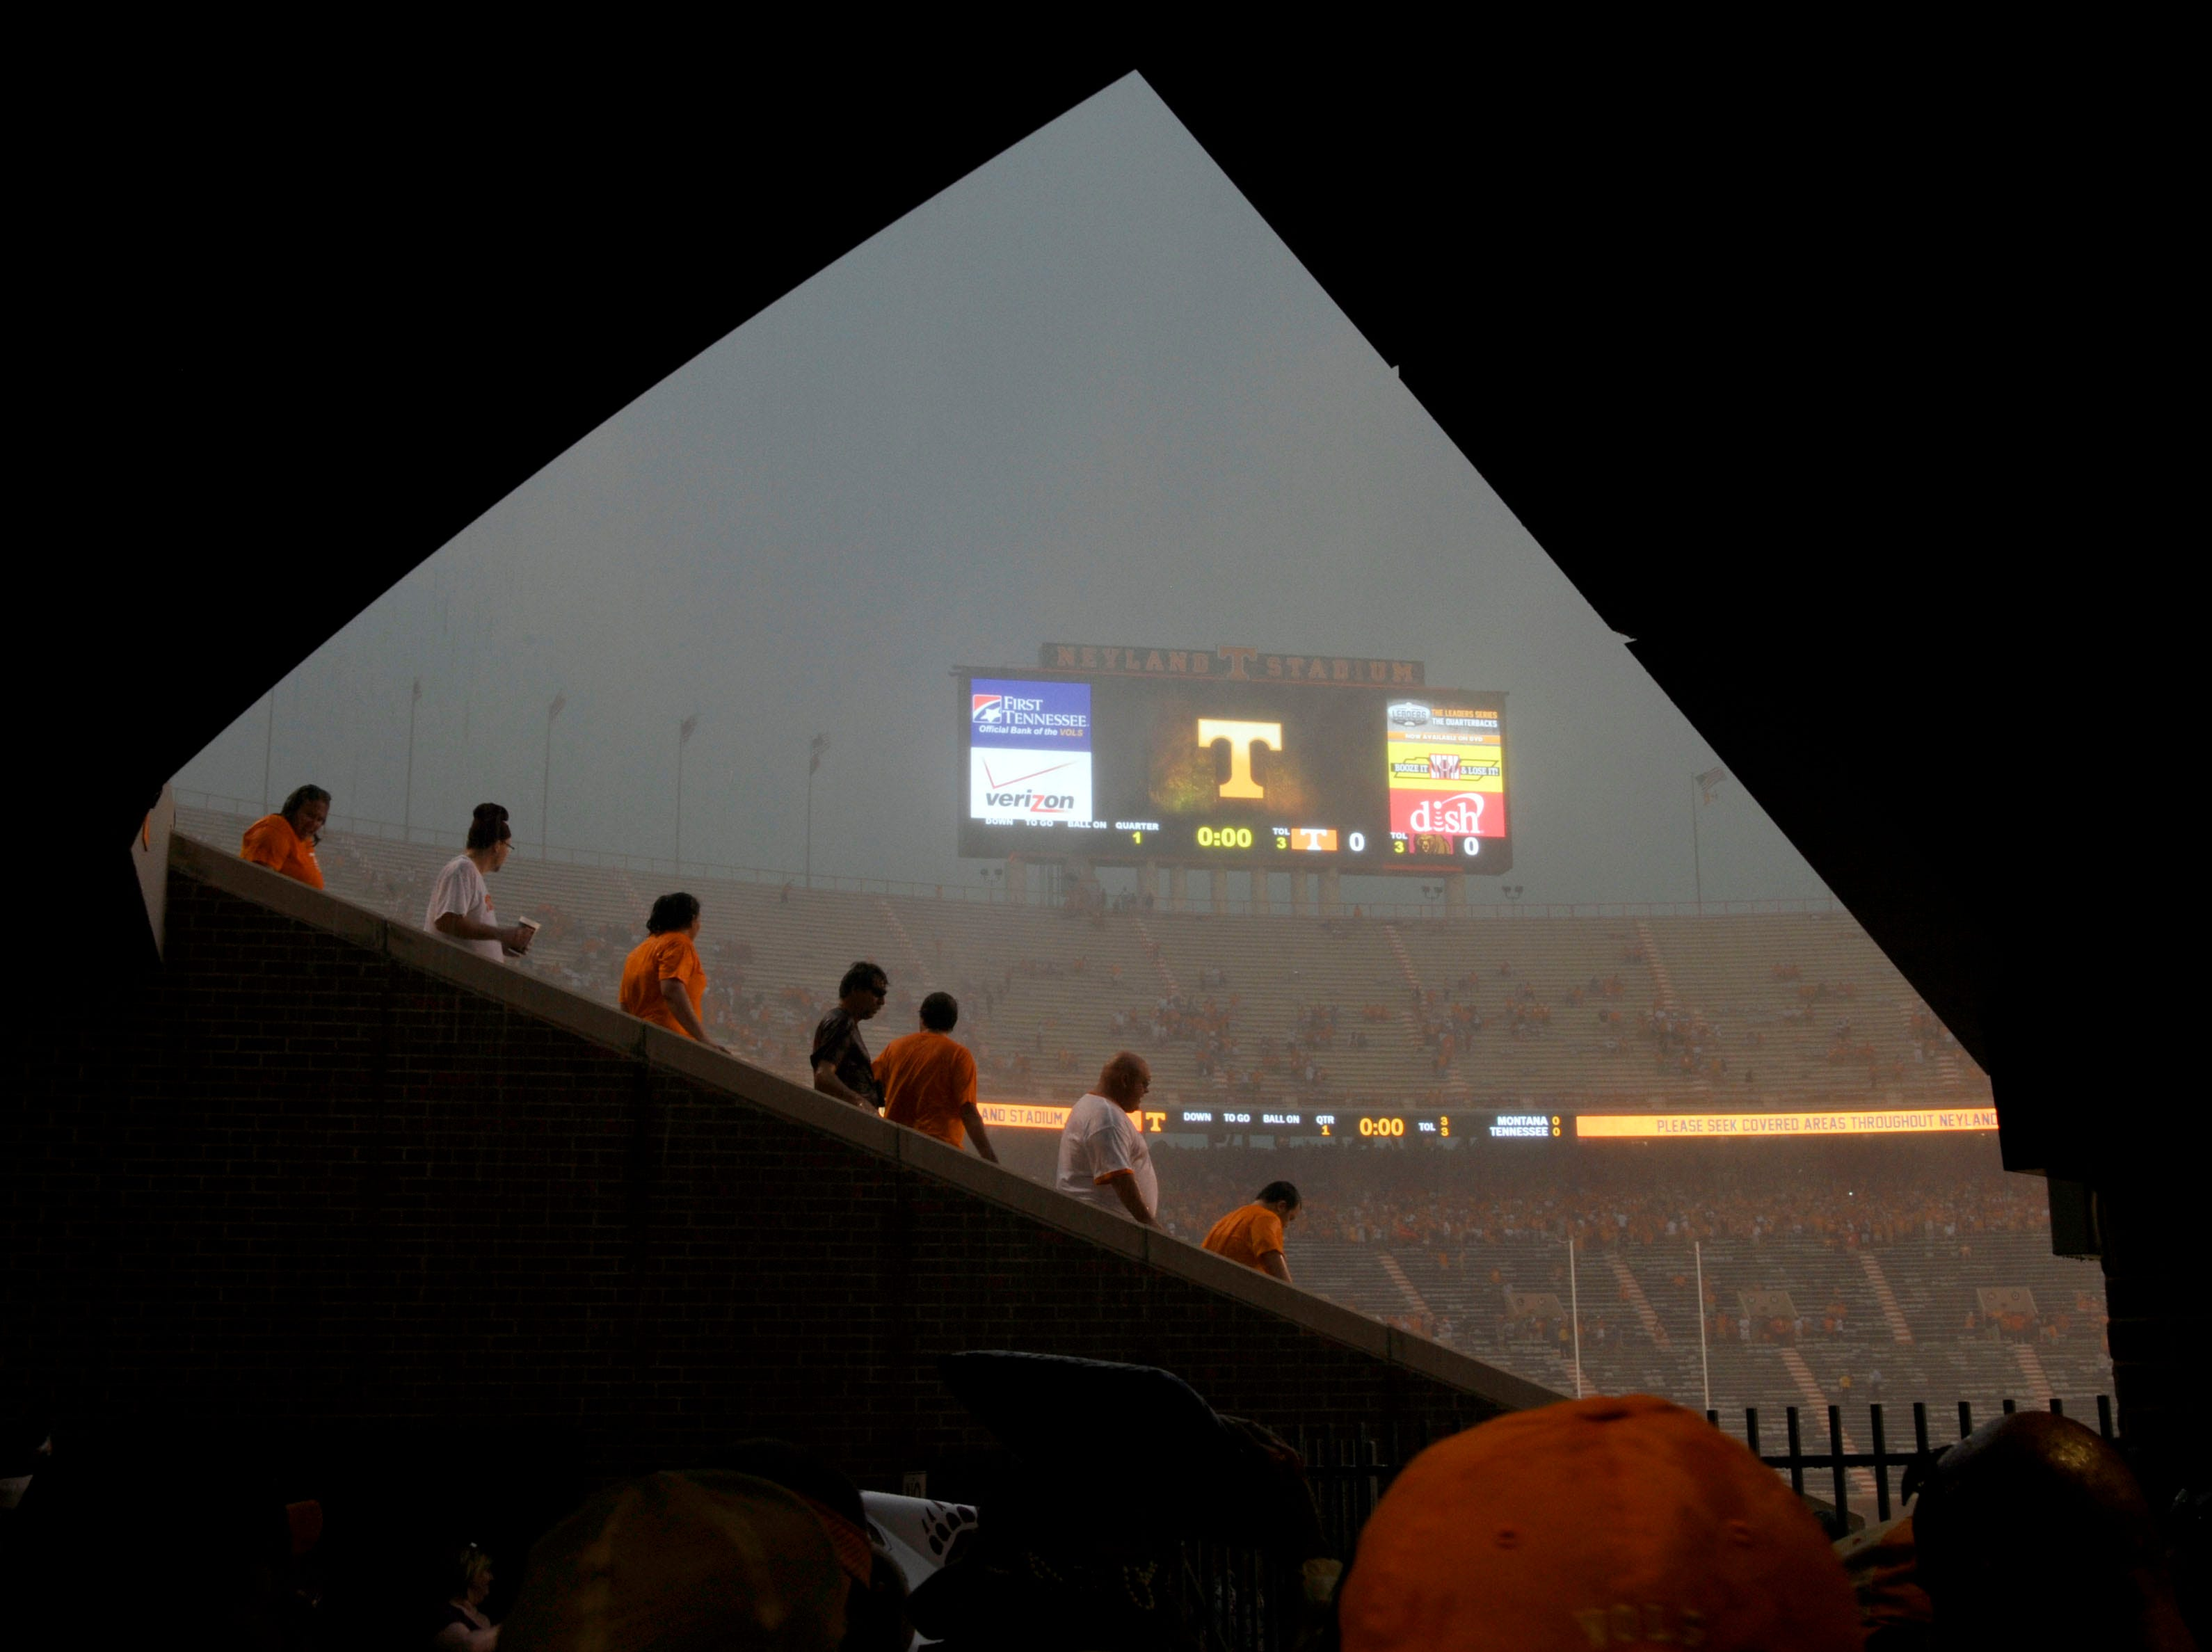 Fans leave the stands after heavy rain begins to fall in Neyland Stadium. About five minutes before the kickoff with the Montana Grizzlies Saturday, Sep. 3, 2011 in Neyland Stadium the game was delayed because of weather in the area.